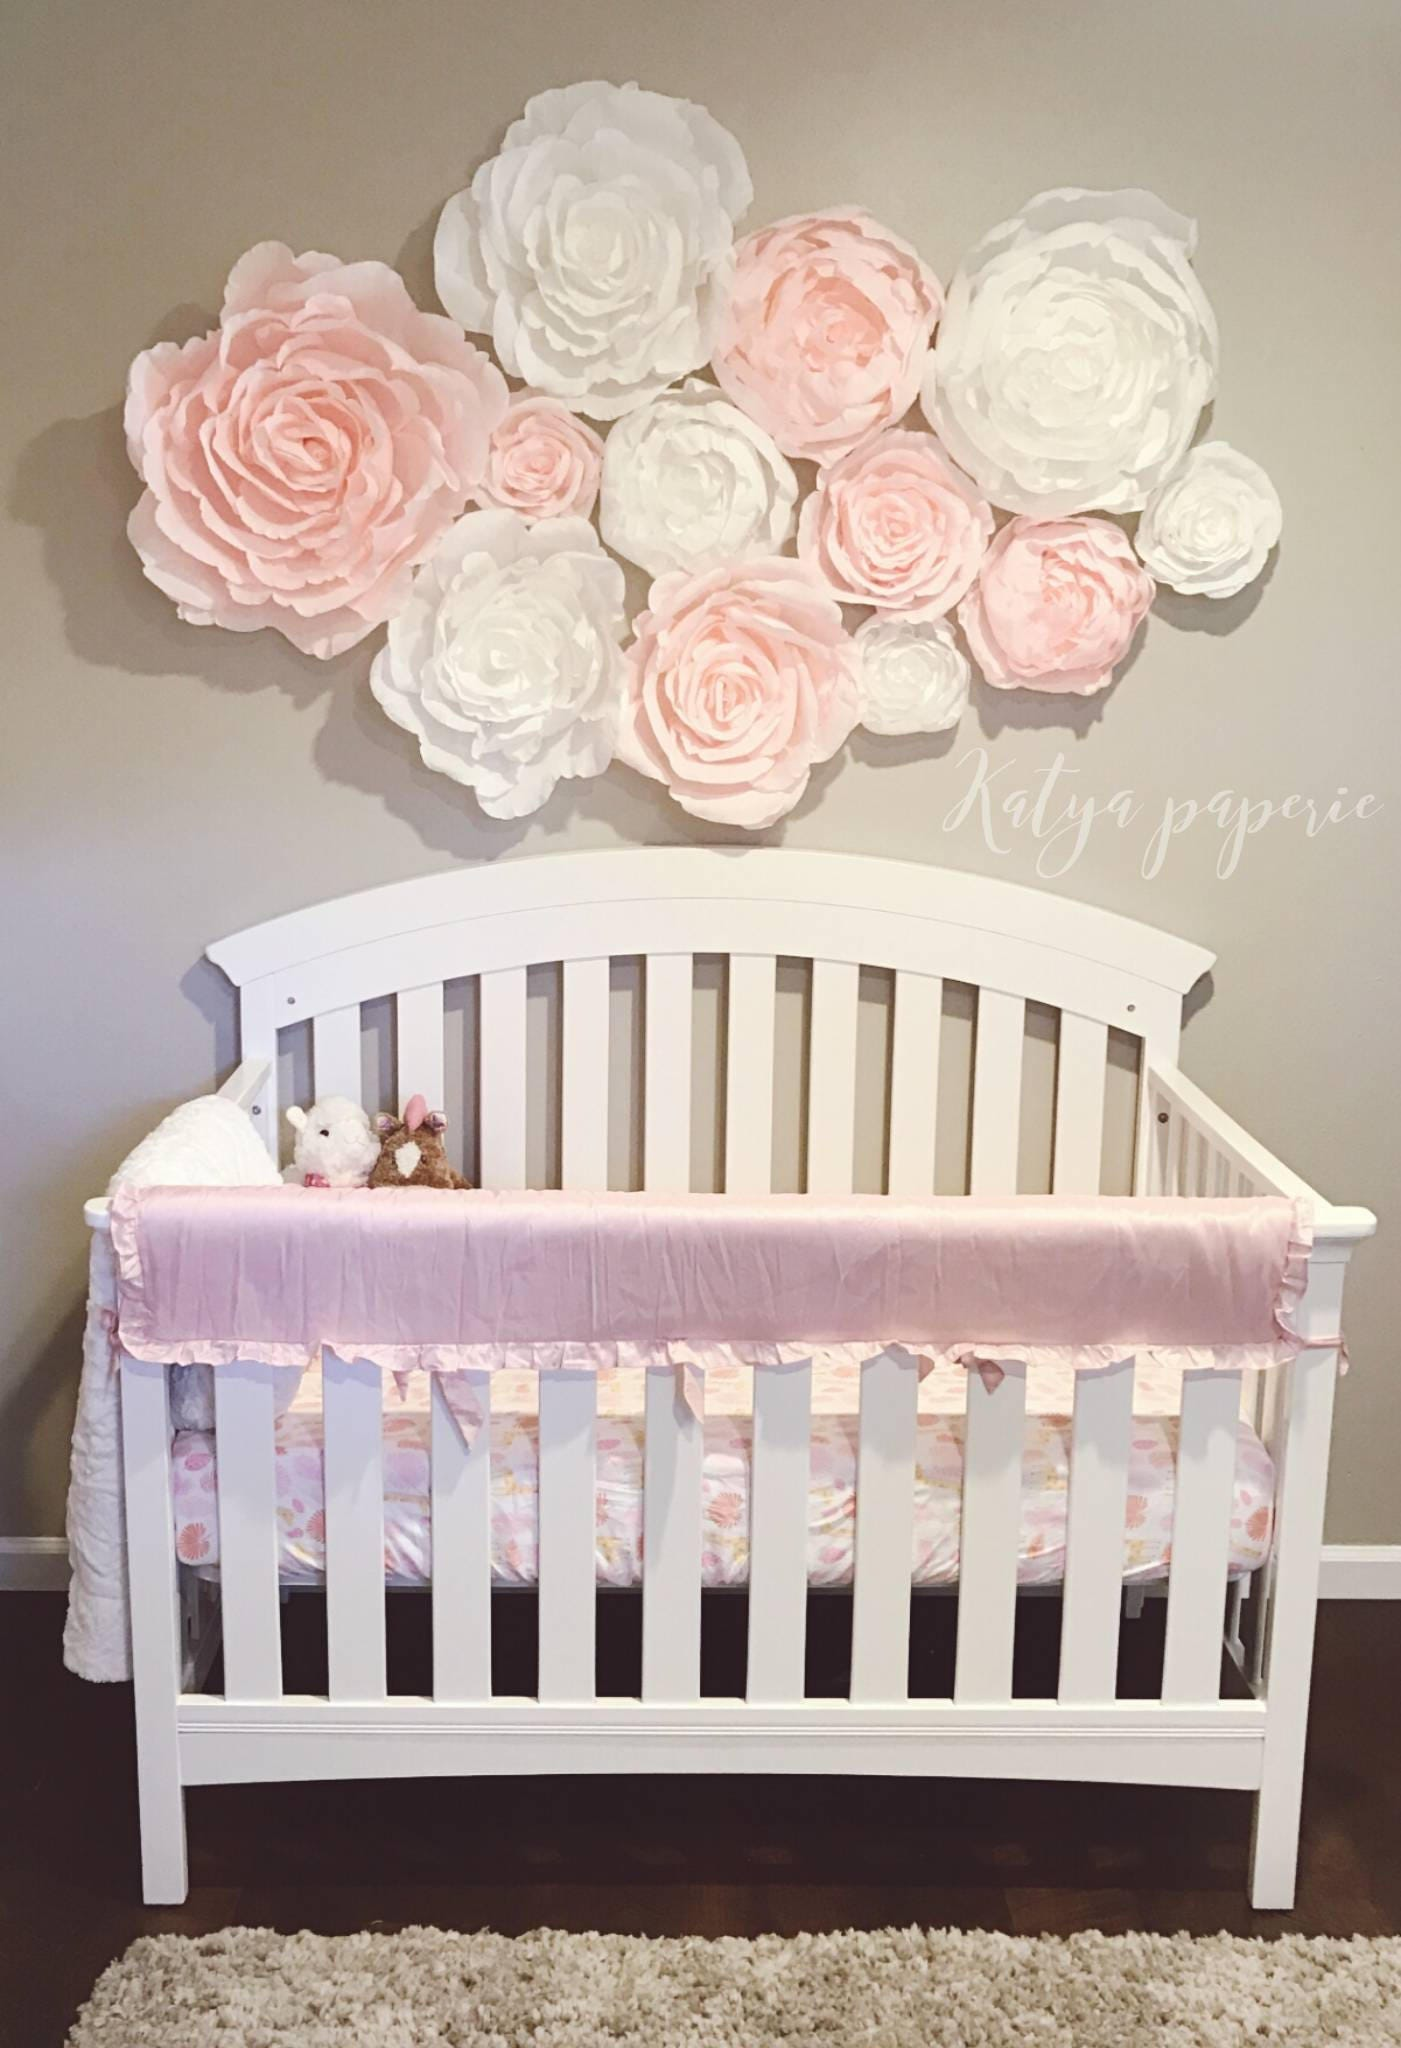 Blush Nursery Wall Paper Flowers Paper Flower Wall Display